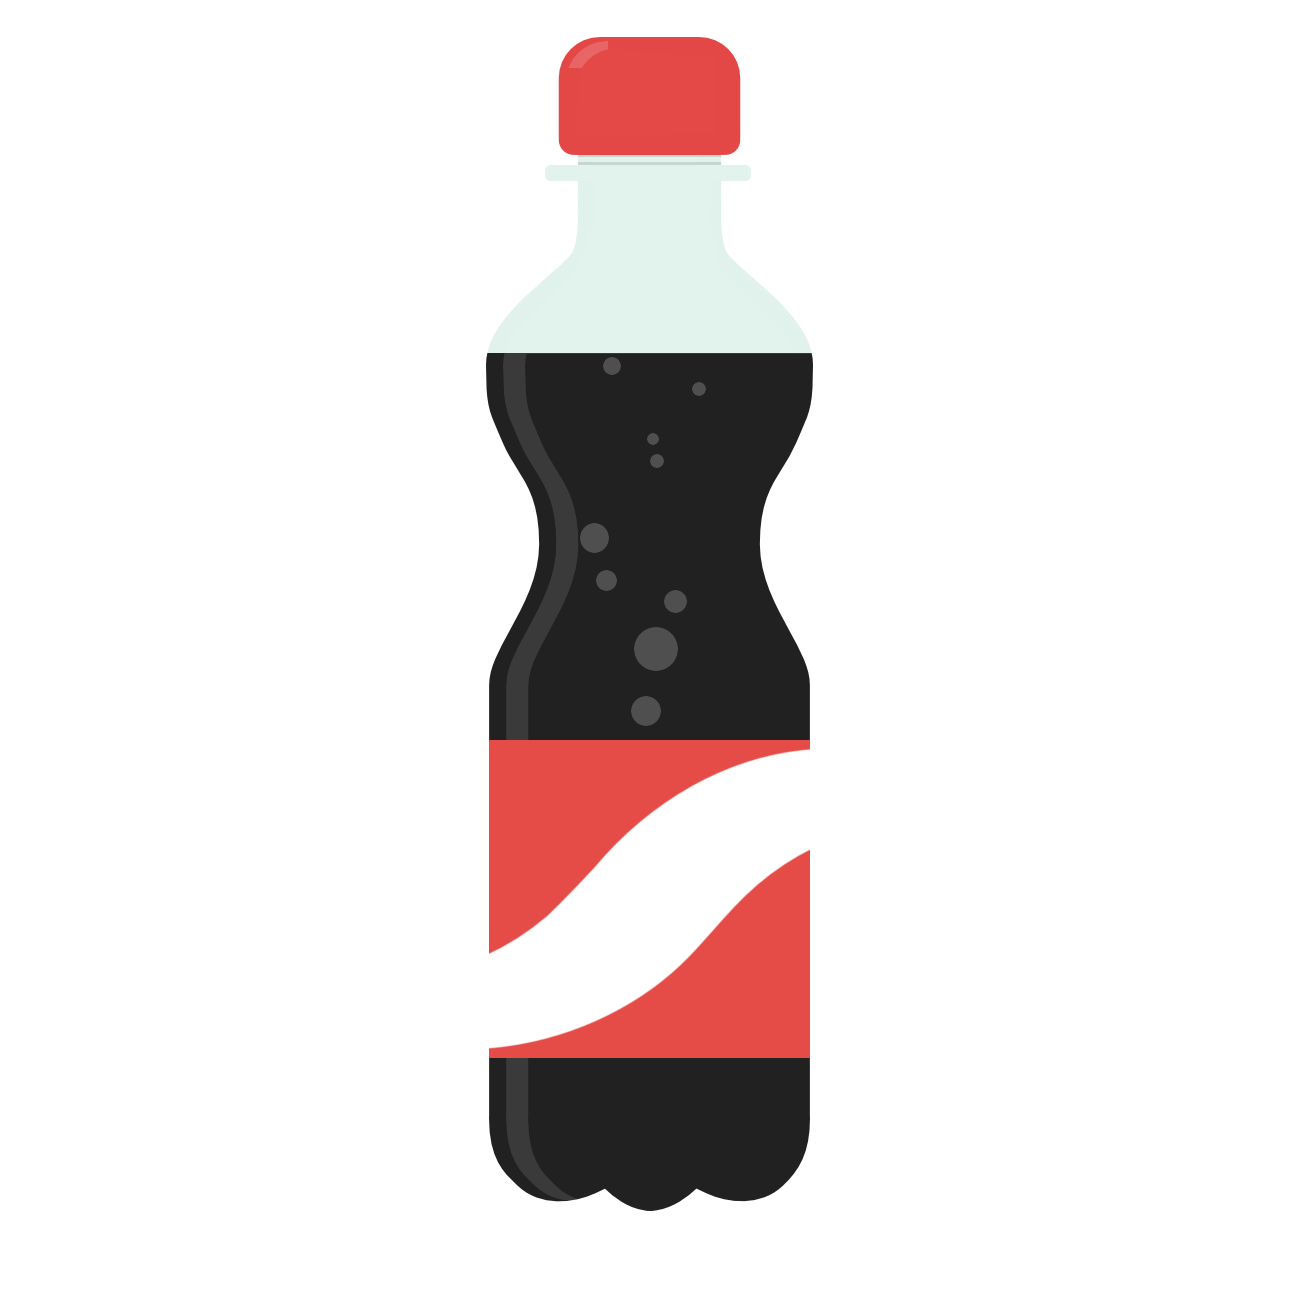 Bottle icons | OpenGameArt.org